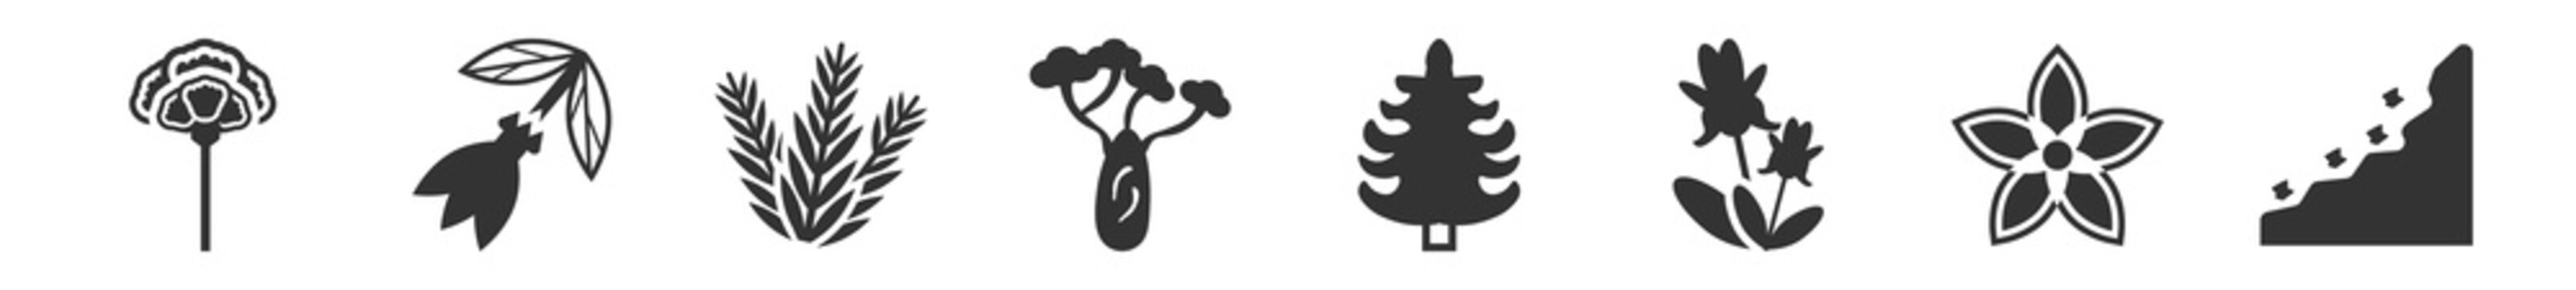 filled set of nature icons. glyph vector icons such as carnation, ylang-ylang, rosemary, baobab, cedar, cliff. vector illustration.